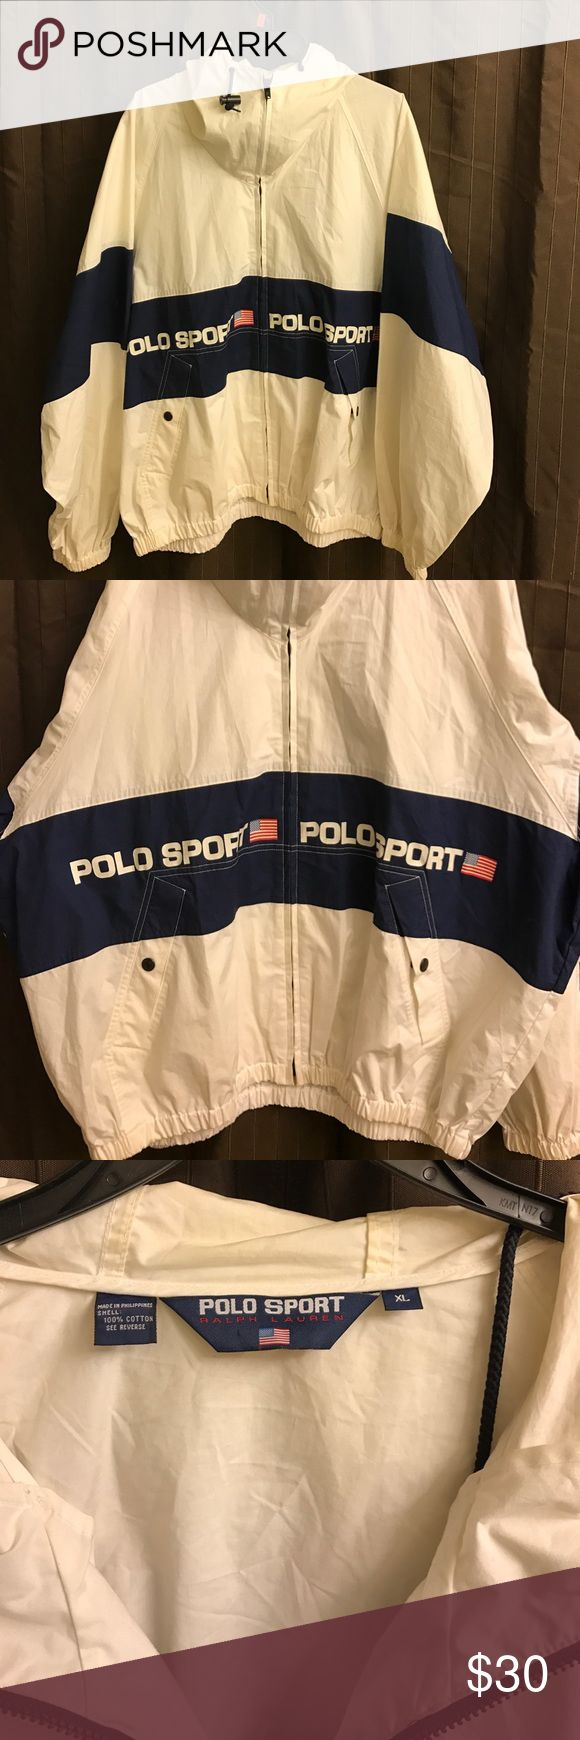 og Polo Sport  Ralph Lauren jacket This is a retro piece // it is lit // size is xl if you like the baggy look :m// color is white and blue // a bit of neck usage // a few ceiling smudges but over all very clean condition 8/10 // that vintage look and feel Polo by Ralph Lauren Jackets & Coats Windbreakers